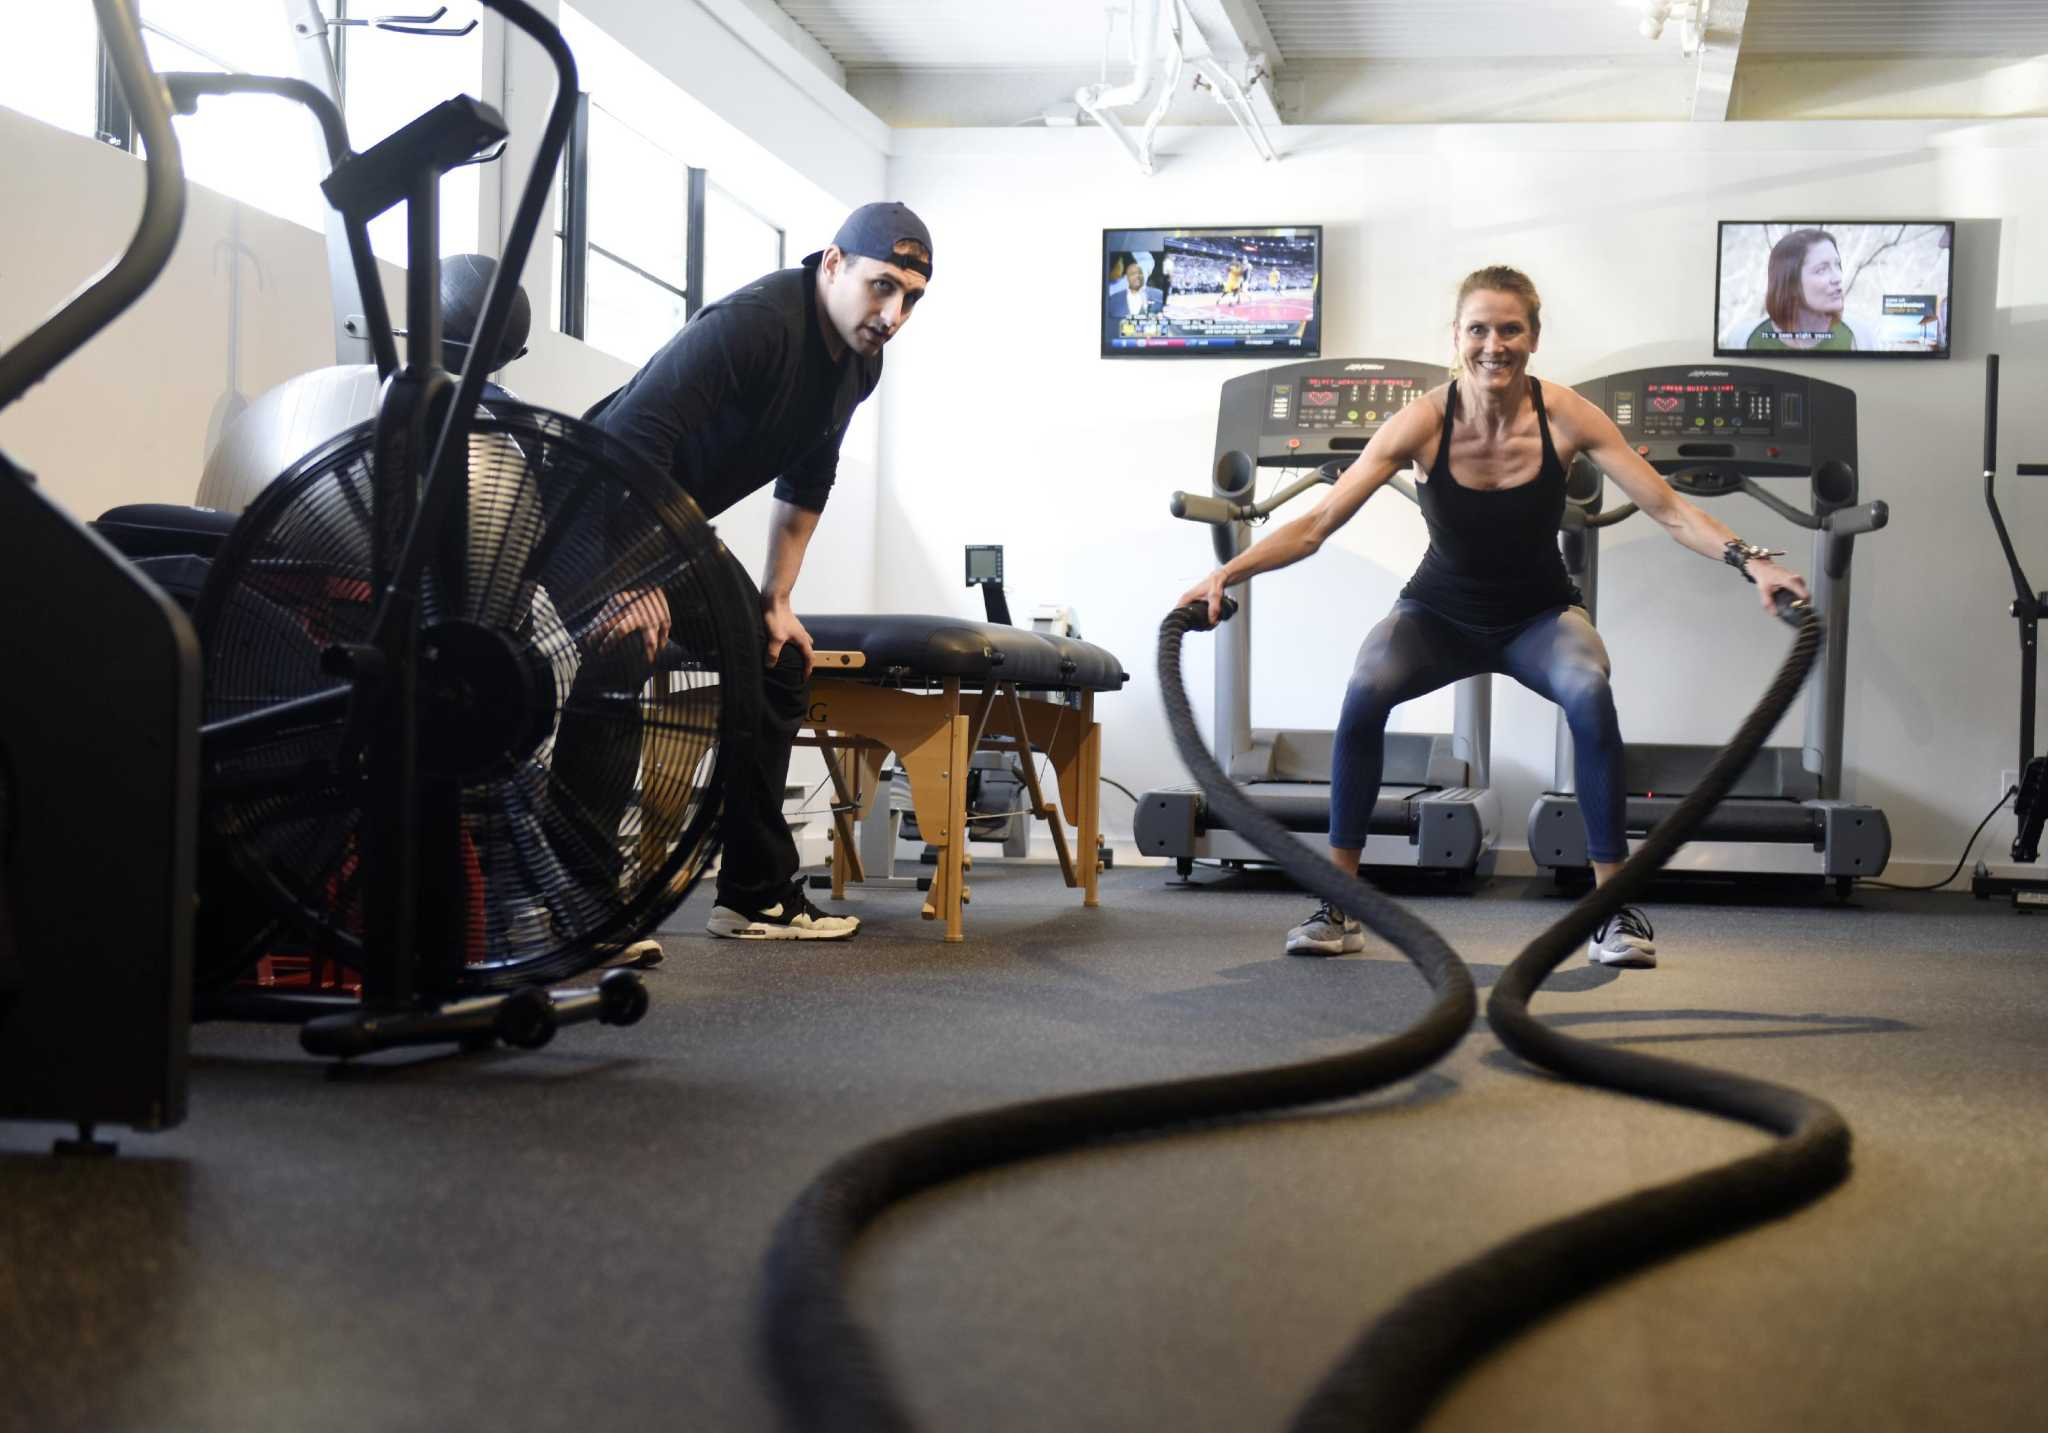 In Forma: A gym with a unique business model - GreenwichTime